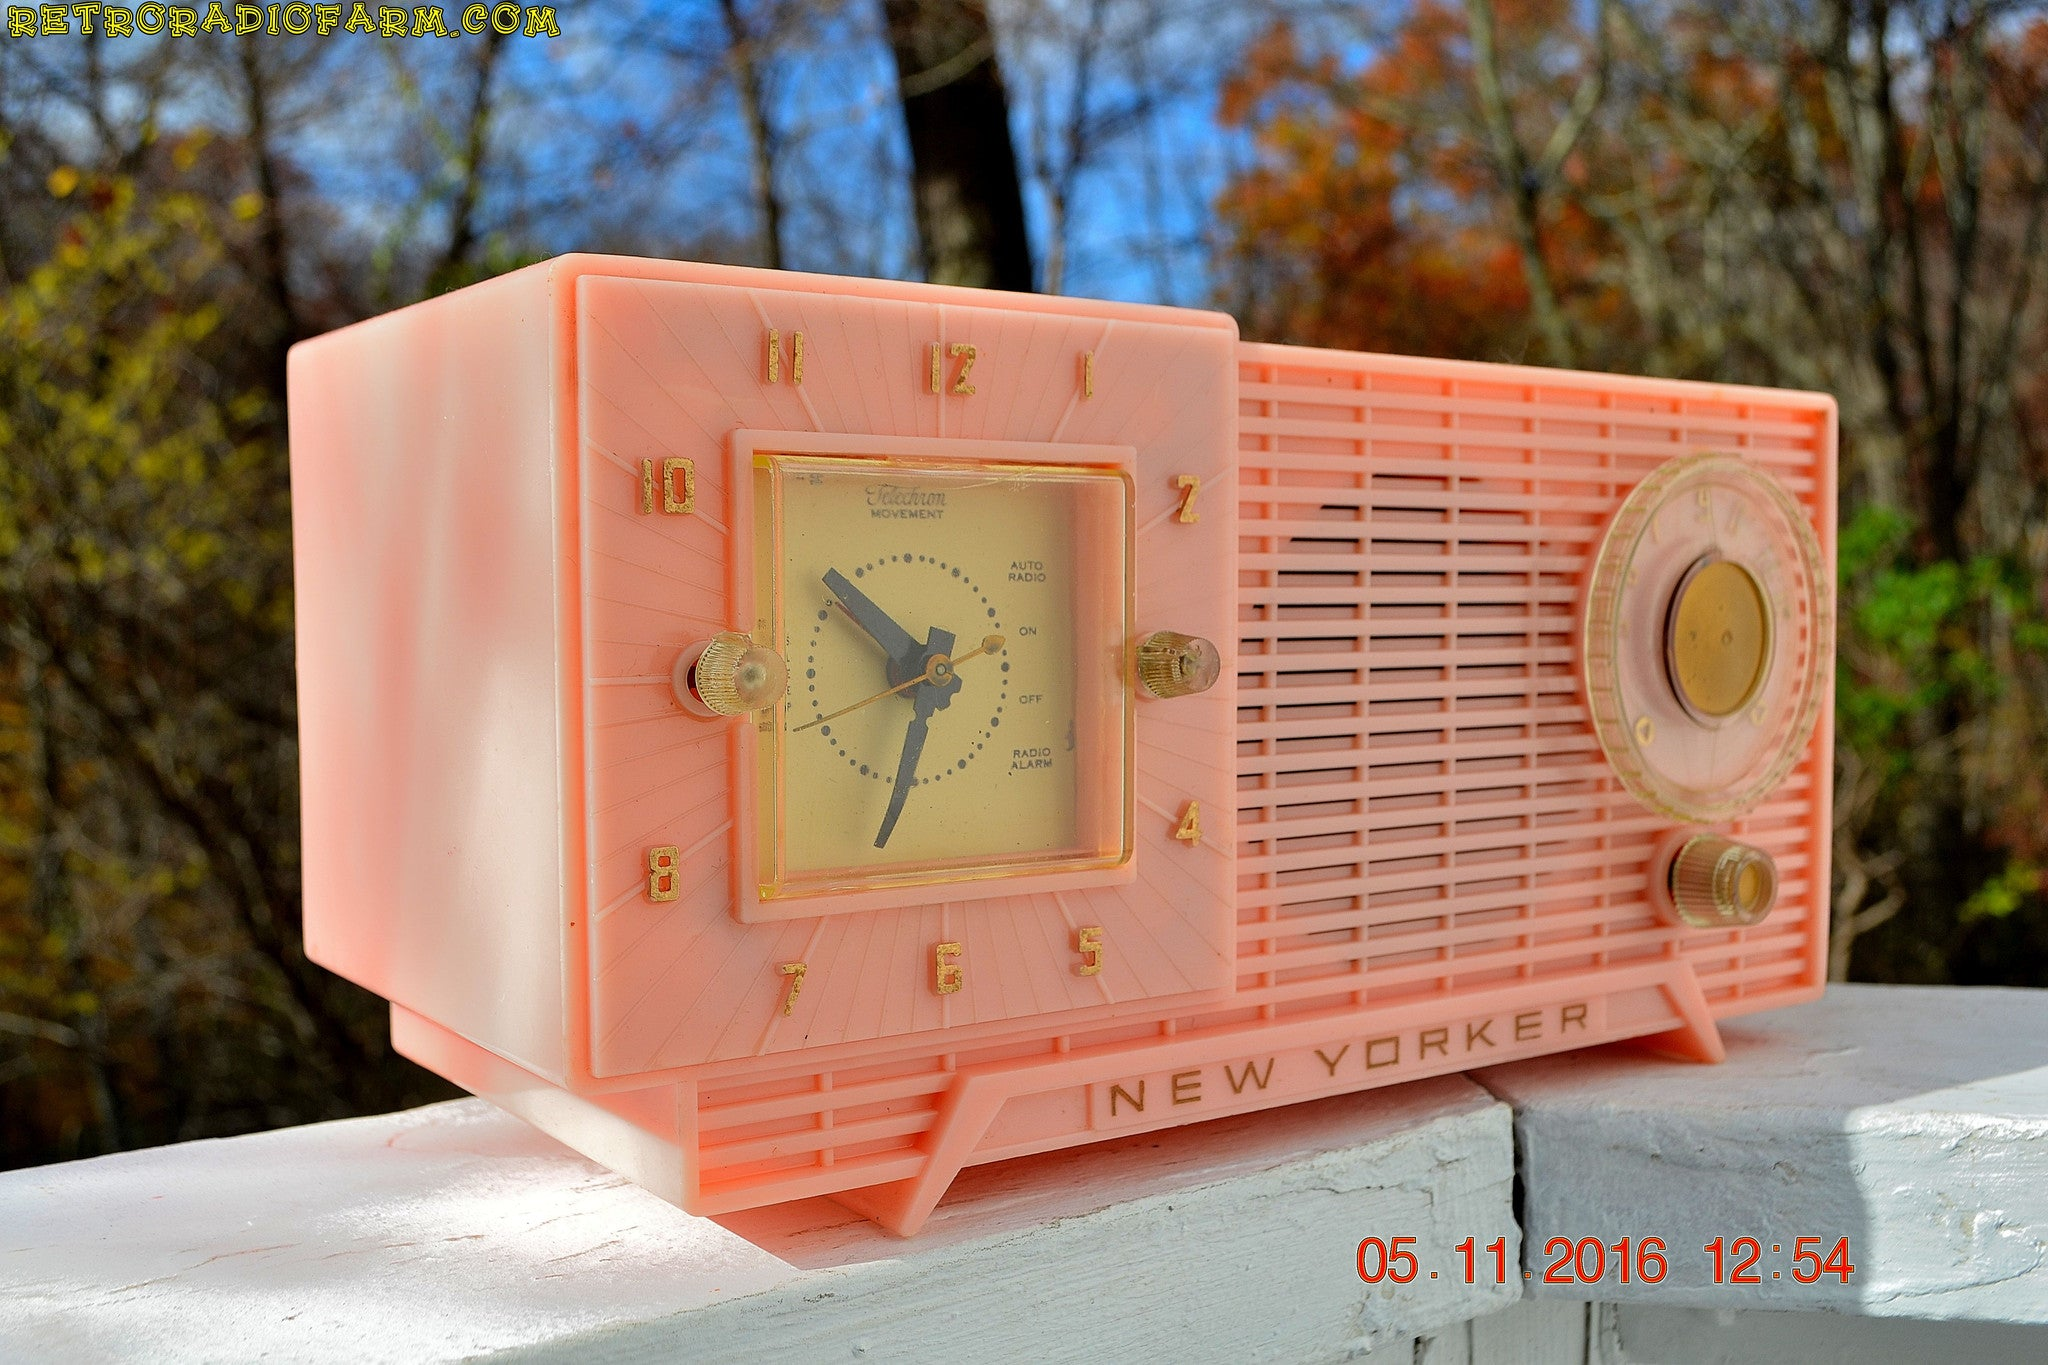 SOLD! - Nov 7, 2016 - PARK AVE PINK Mid Century Retro Jetsons 1956 New Yorker AM Clock Radio Marilyn Approves!